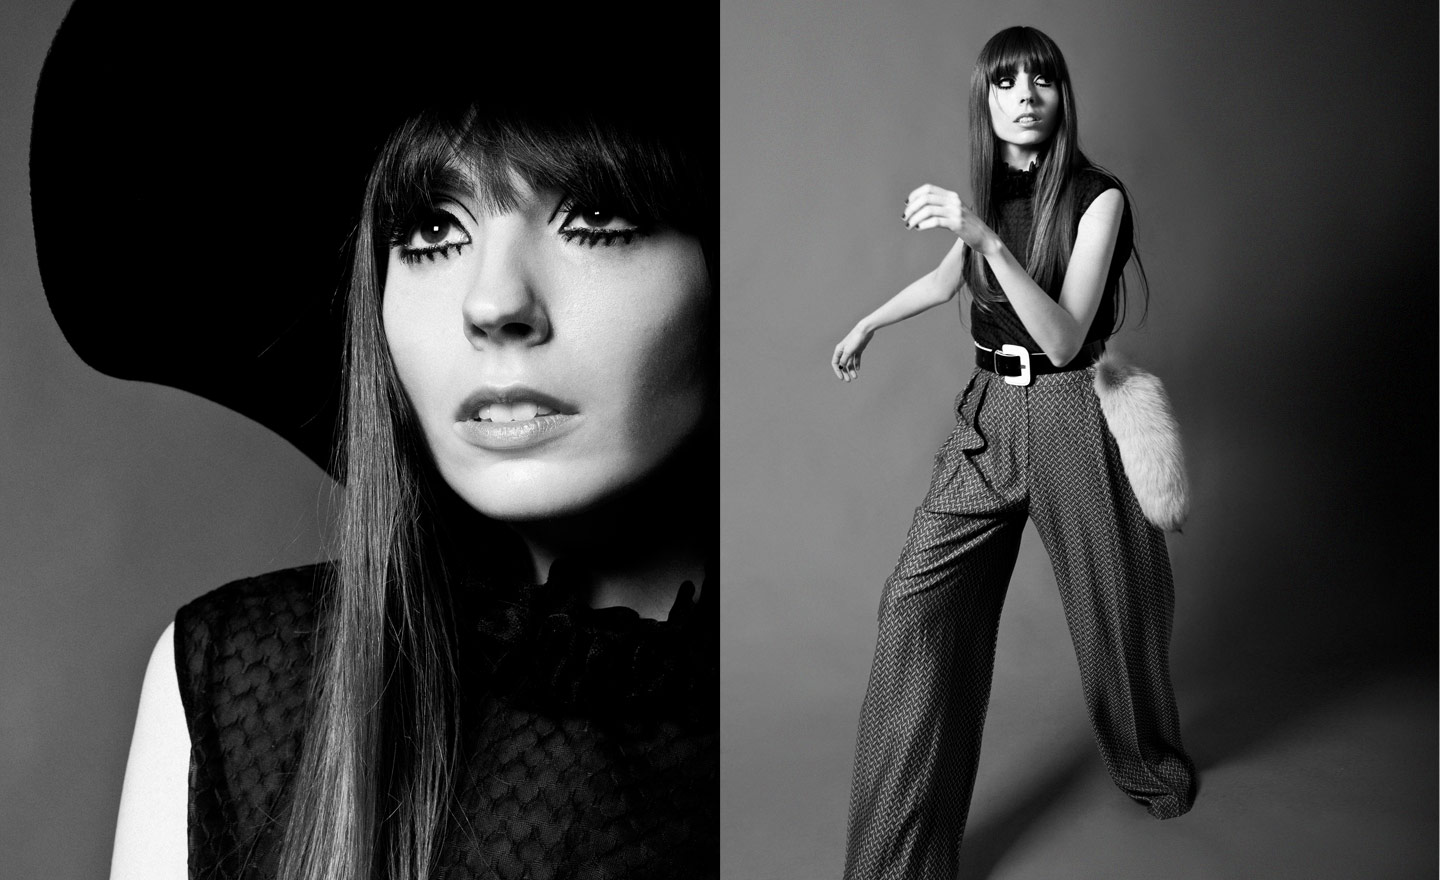 Anna Ponsa López The Knack | itfashion.com